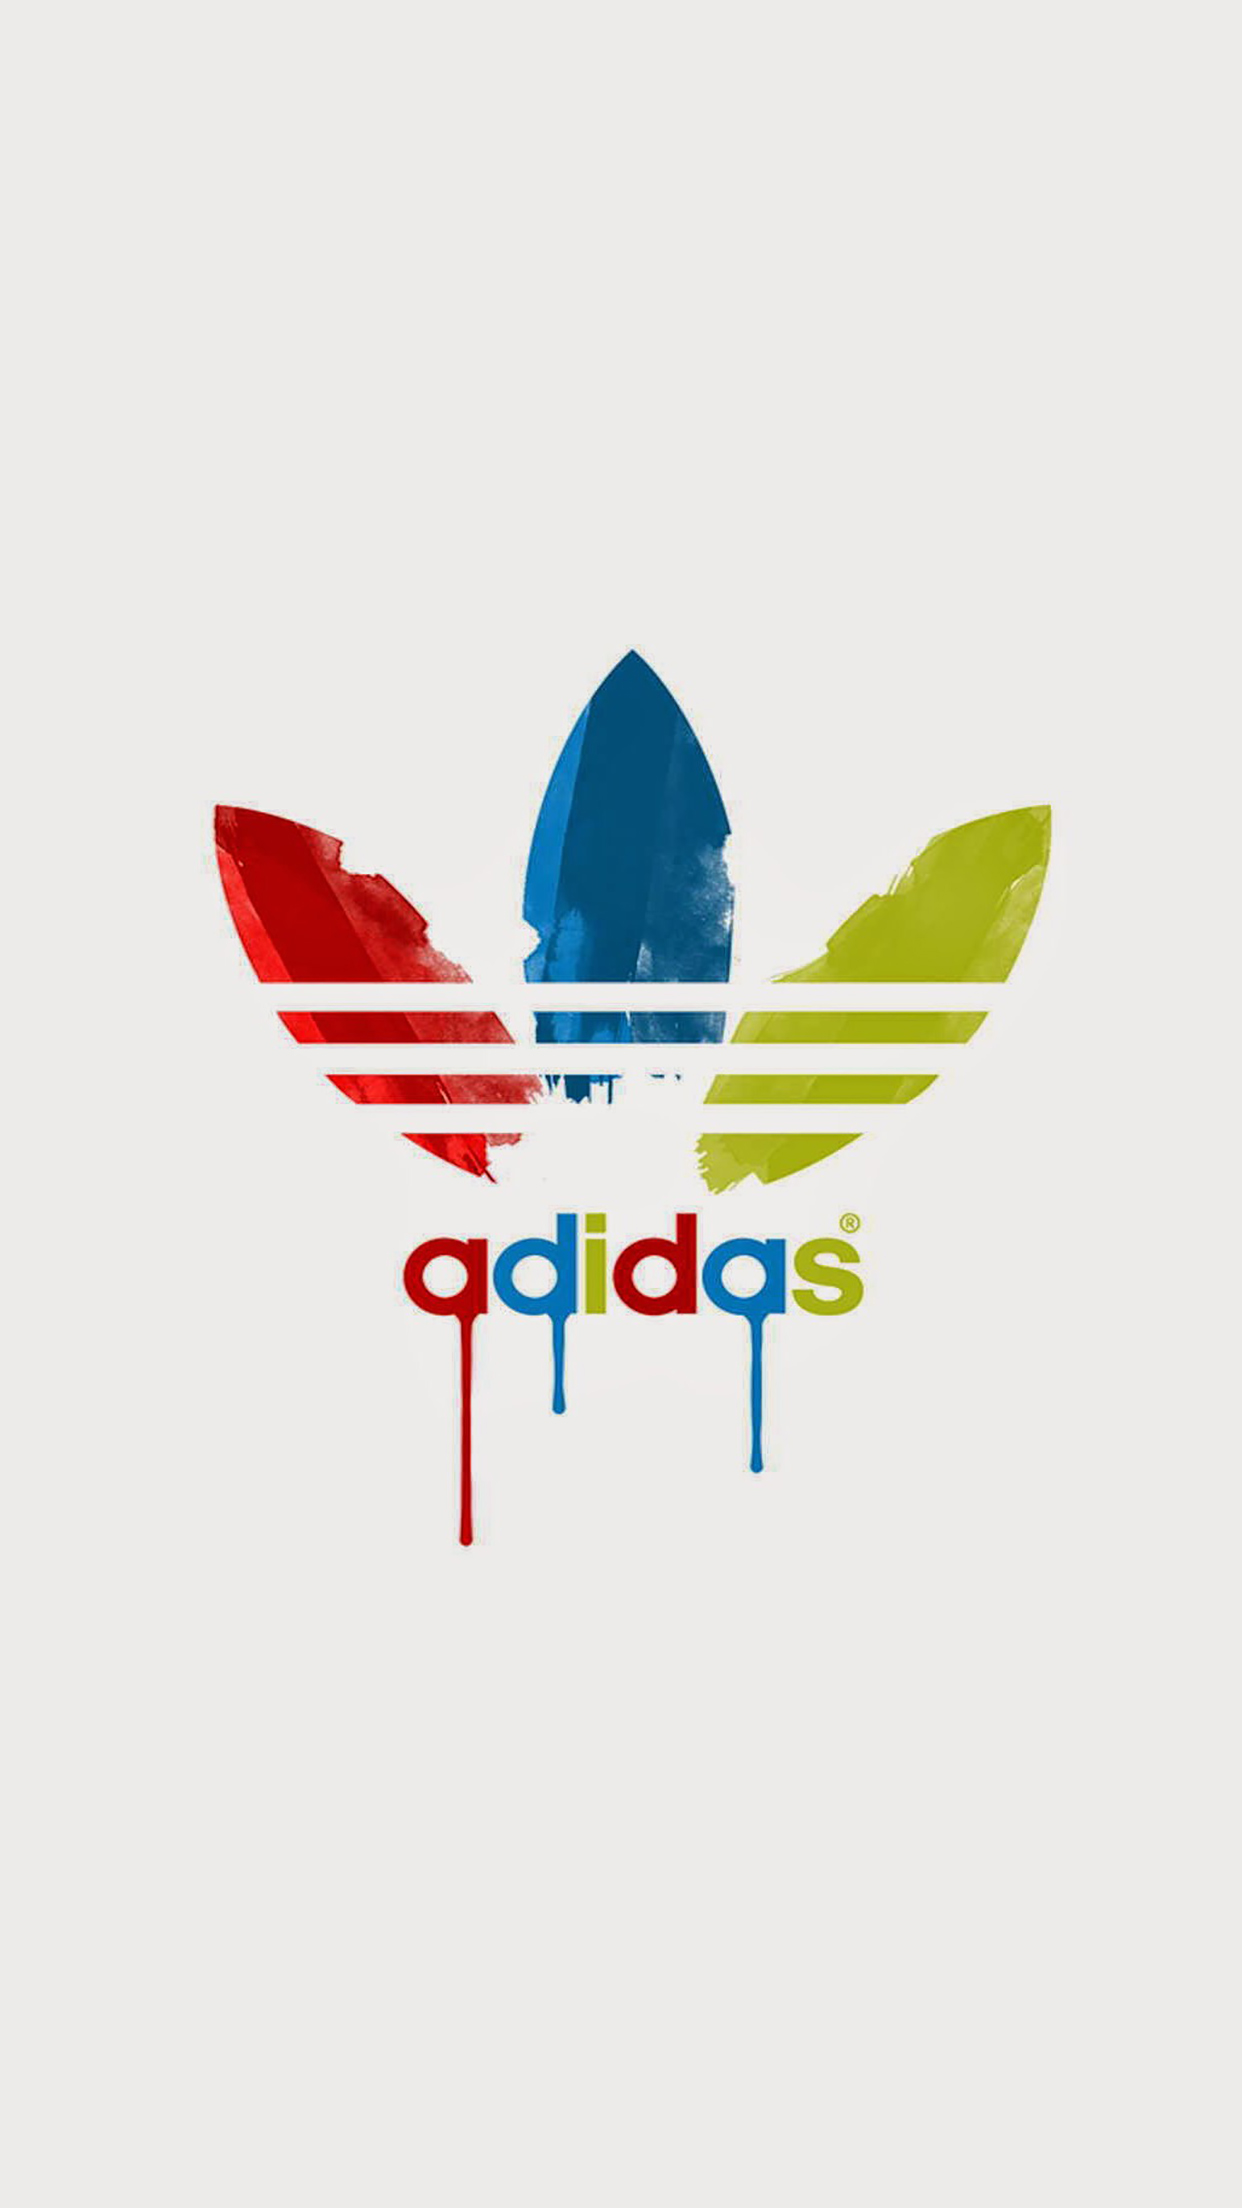 Adidas Logo Painted Wallpaper For Iphone X 8 7 6 Free Download